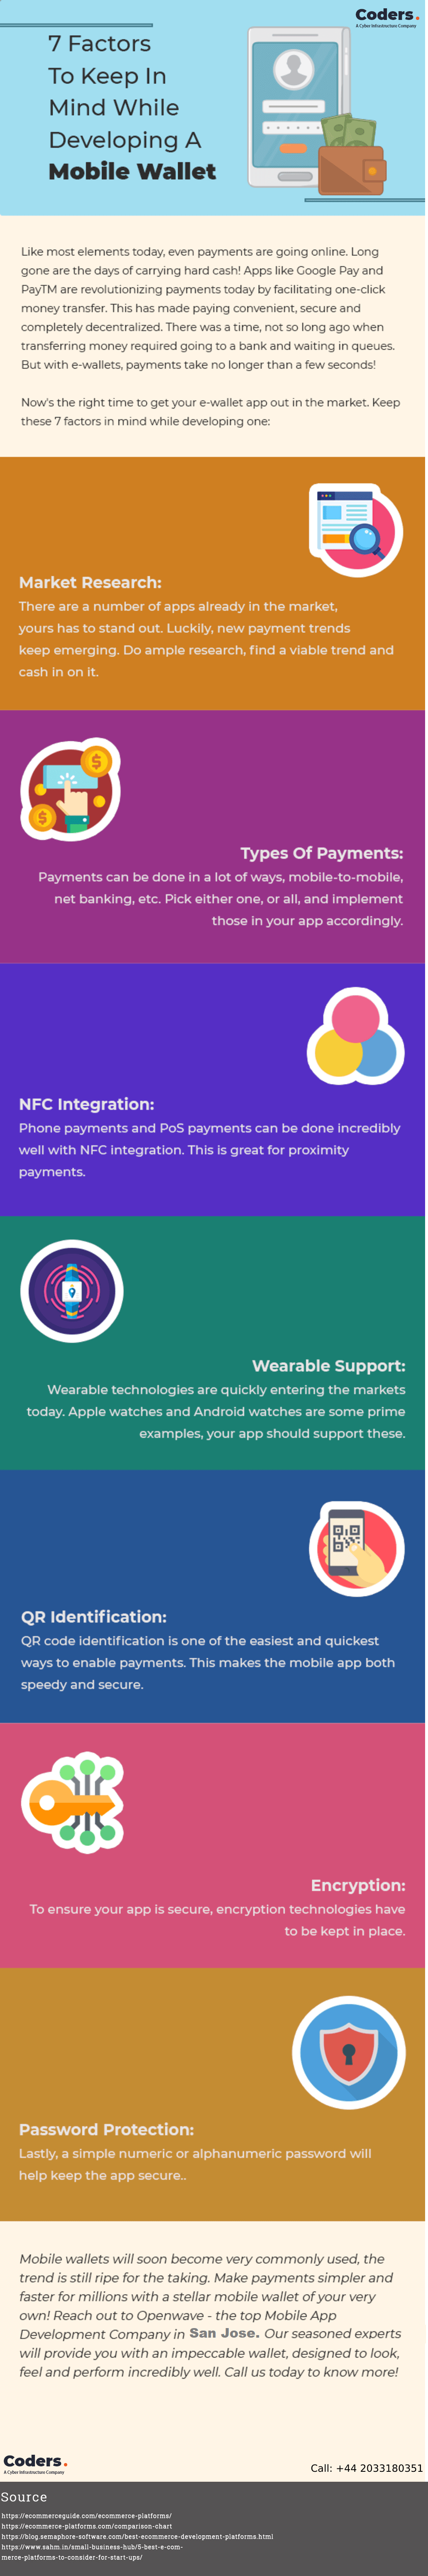 Factors to keep in mind while a developing mobile wallet